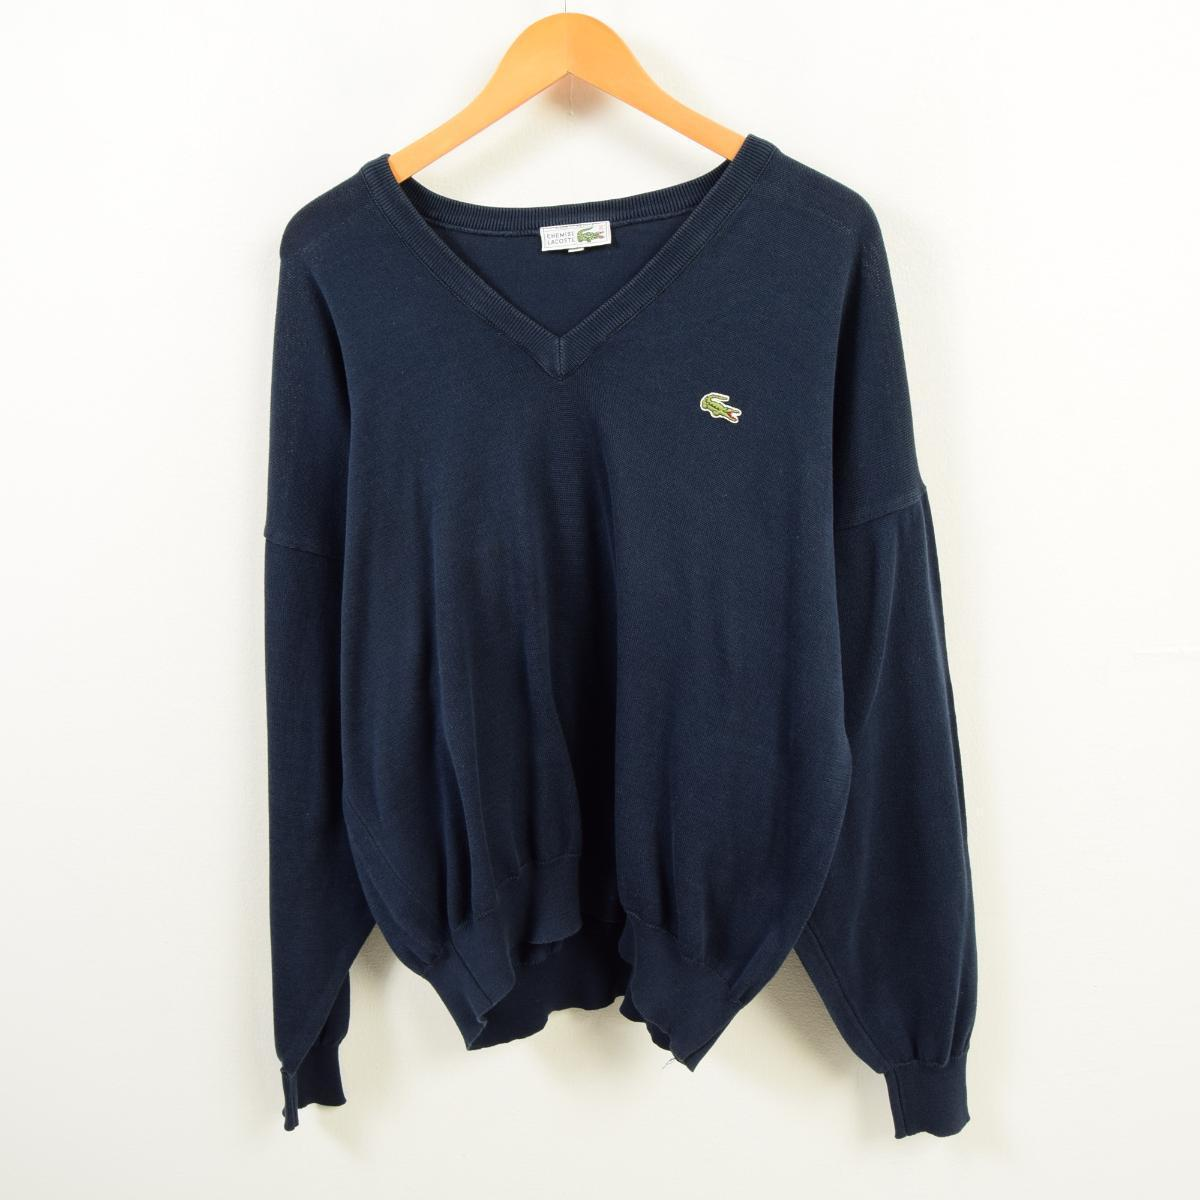 78a16ba5ac0c Men L vintage  waw9941 in the 70s made in Lacoste LACOSTE CHEMISE French  Lacoste V neck wool knit sweater France